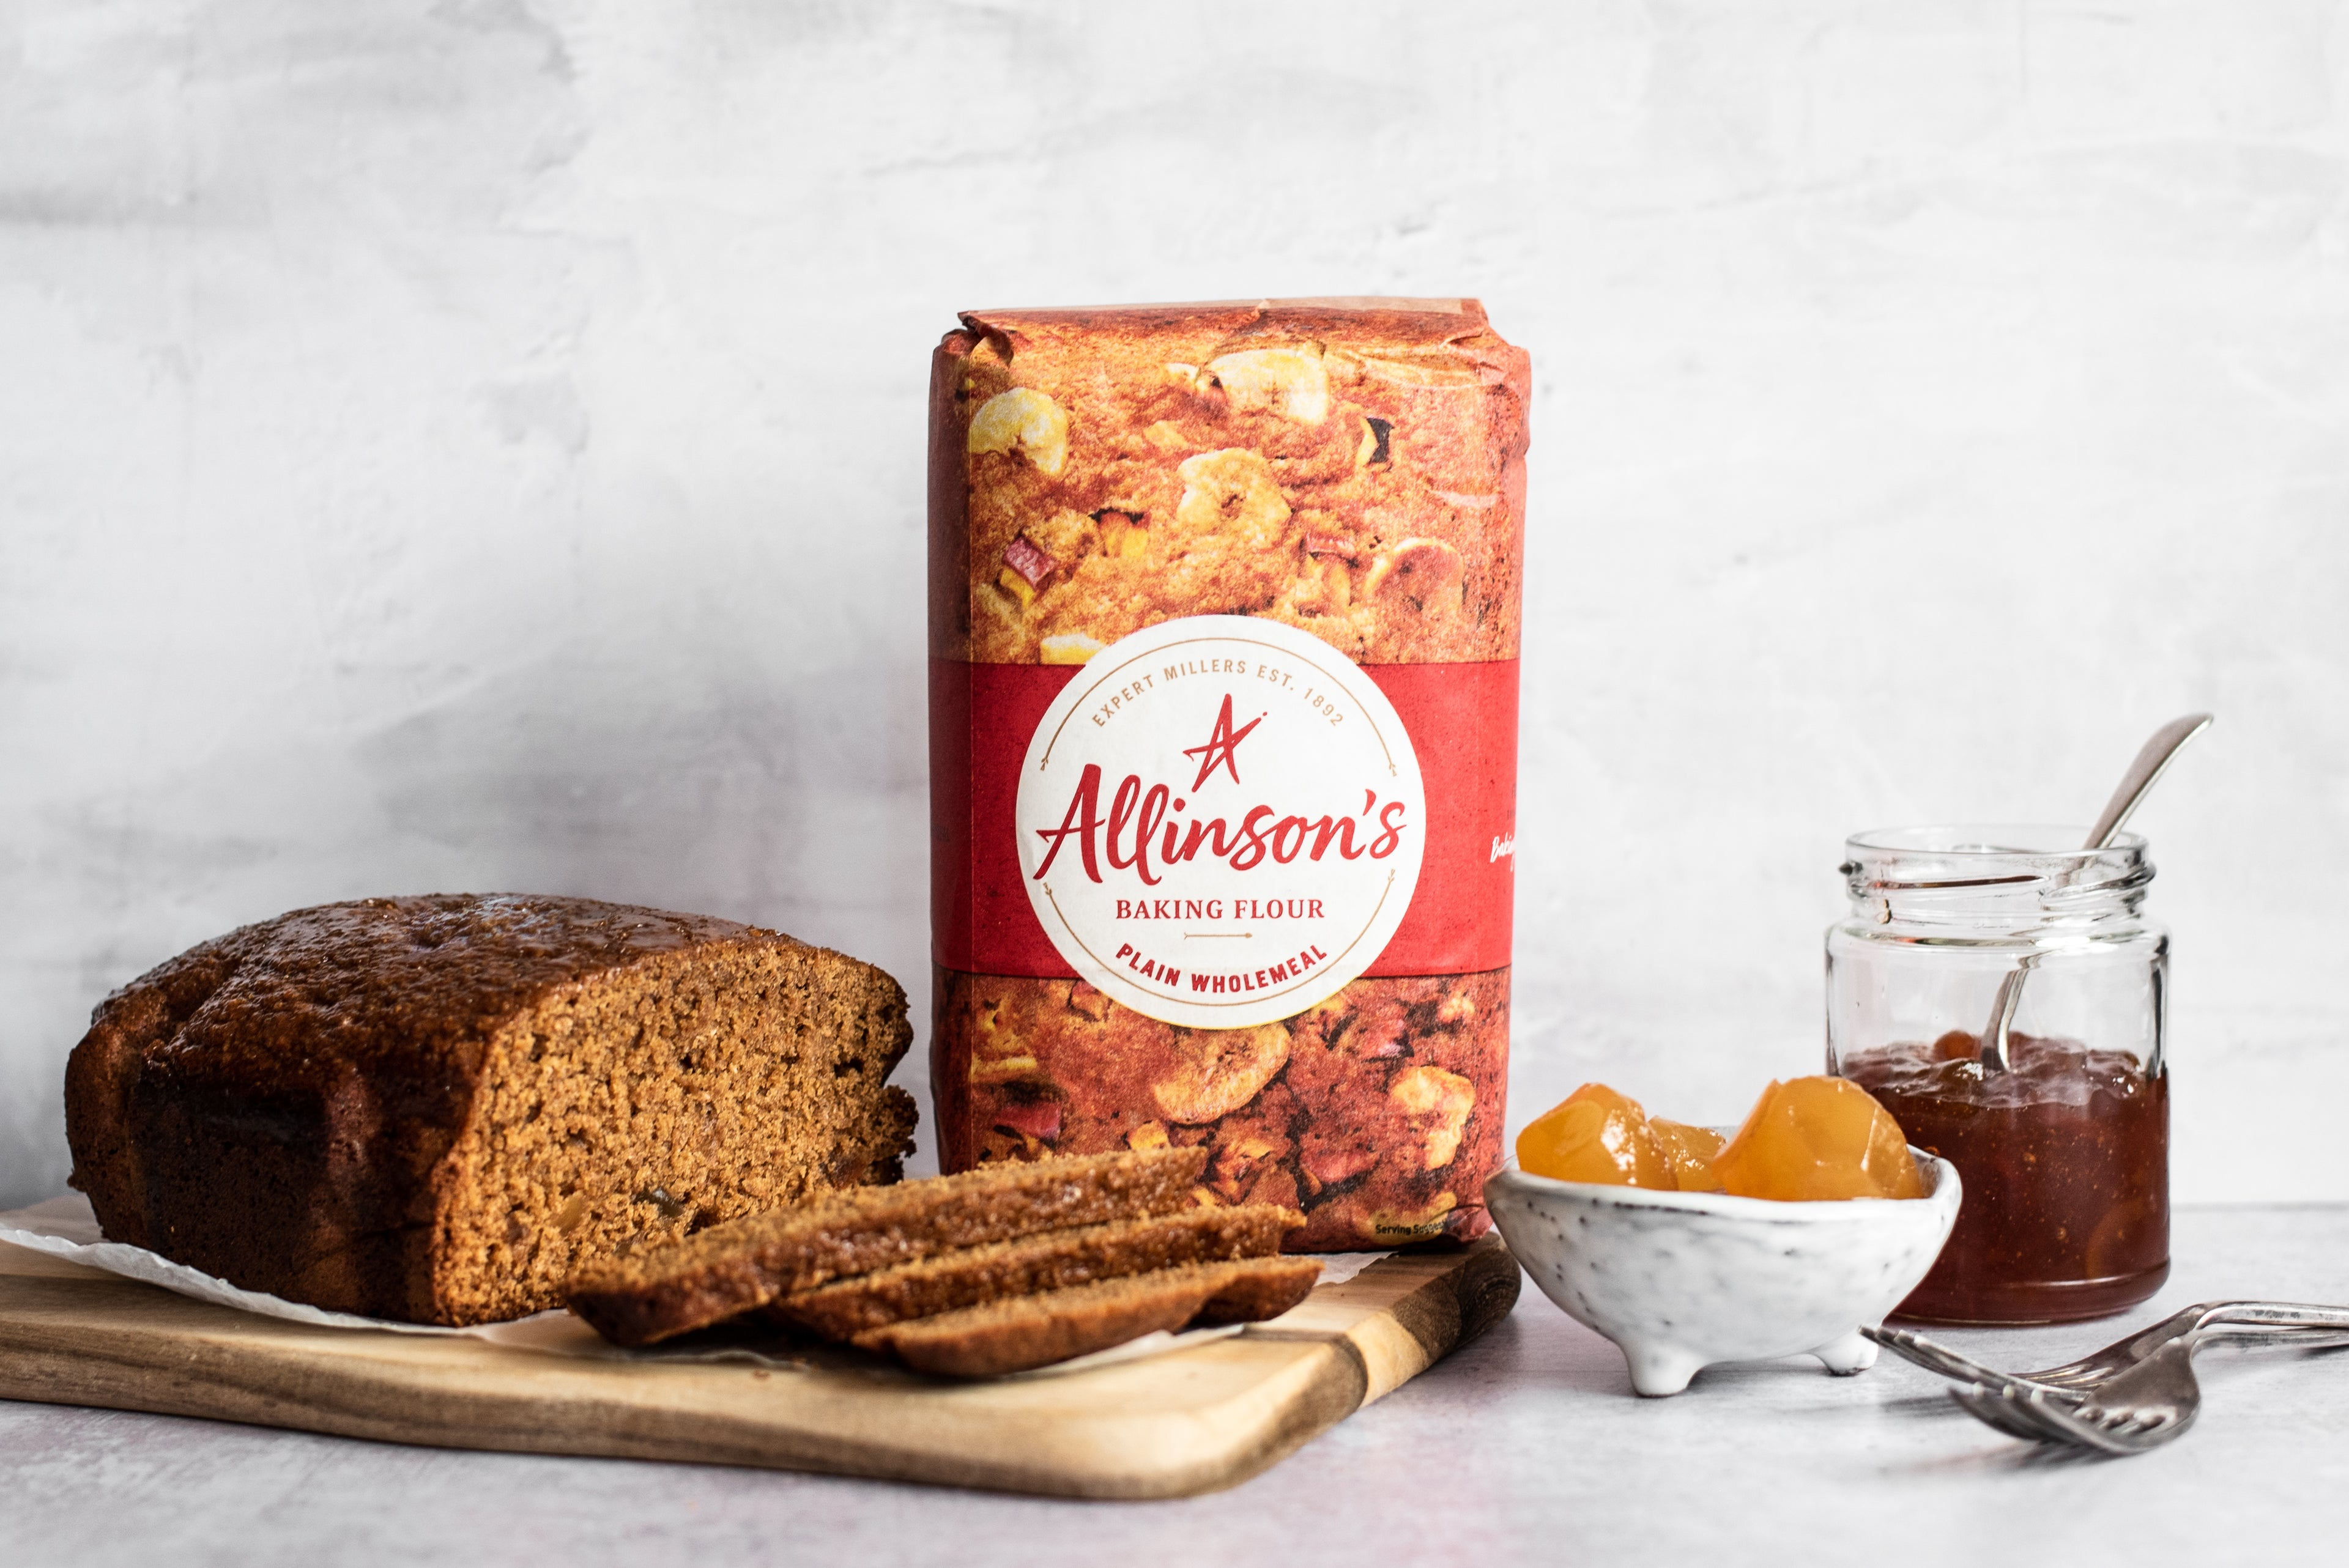 Gingerbread loaf with slices infront, flour pack, bowl of ginger and marmalade in a jar